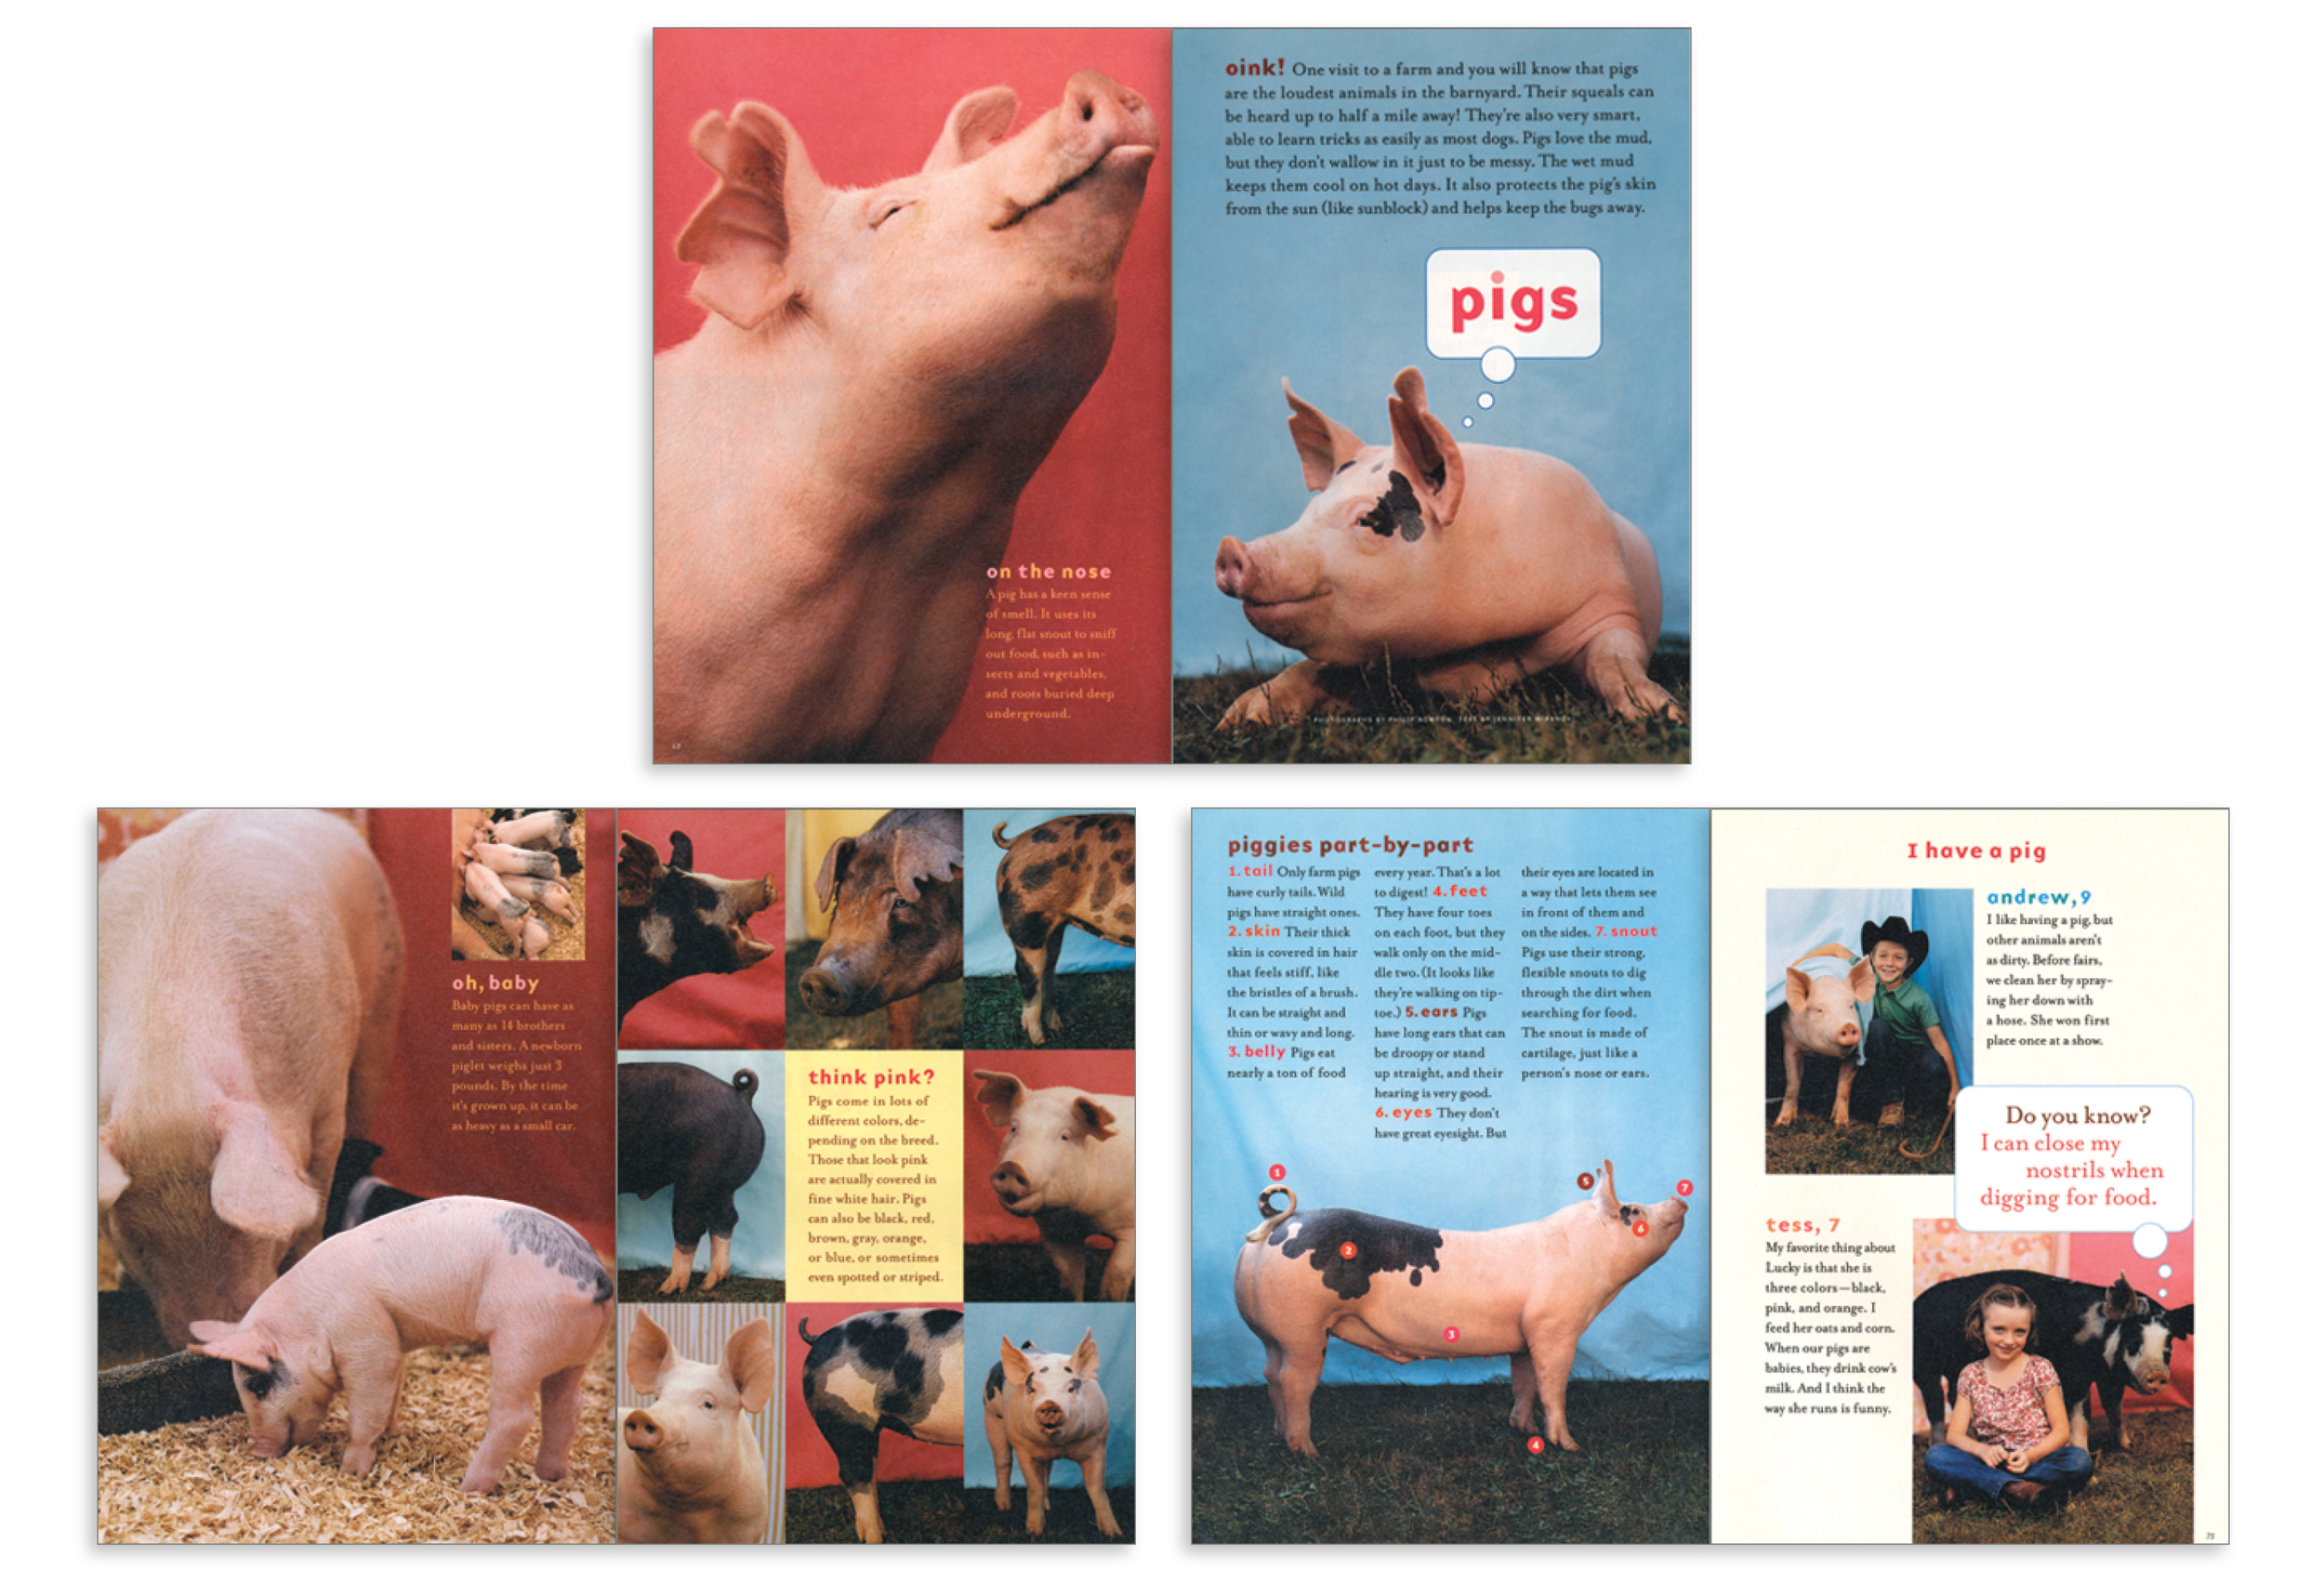 How Now: Pigs